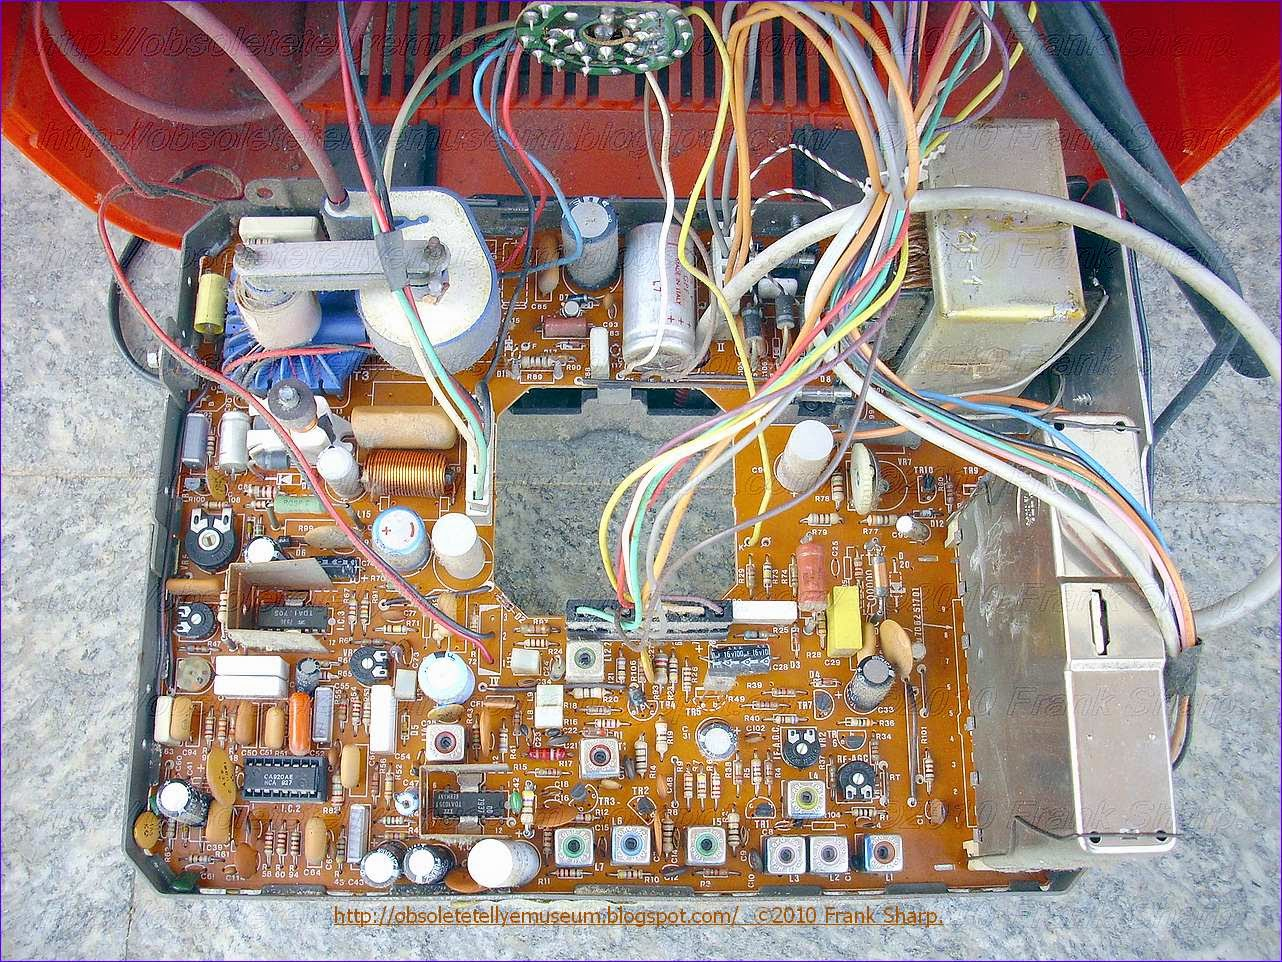 Obsolete Technology Tellye Televideon Mod Tee112 Chassis Vt877 Input And Output Coupling Bipolar Junction Transistors Electronics Of A Linear Regulator Having An Terminal Reference The Circuit Includes Node Transistor